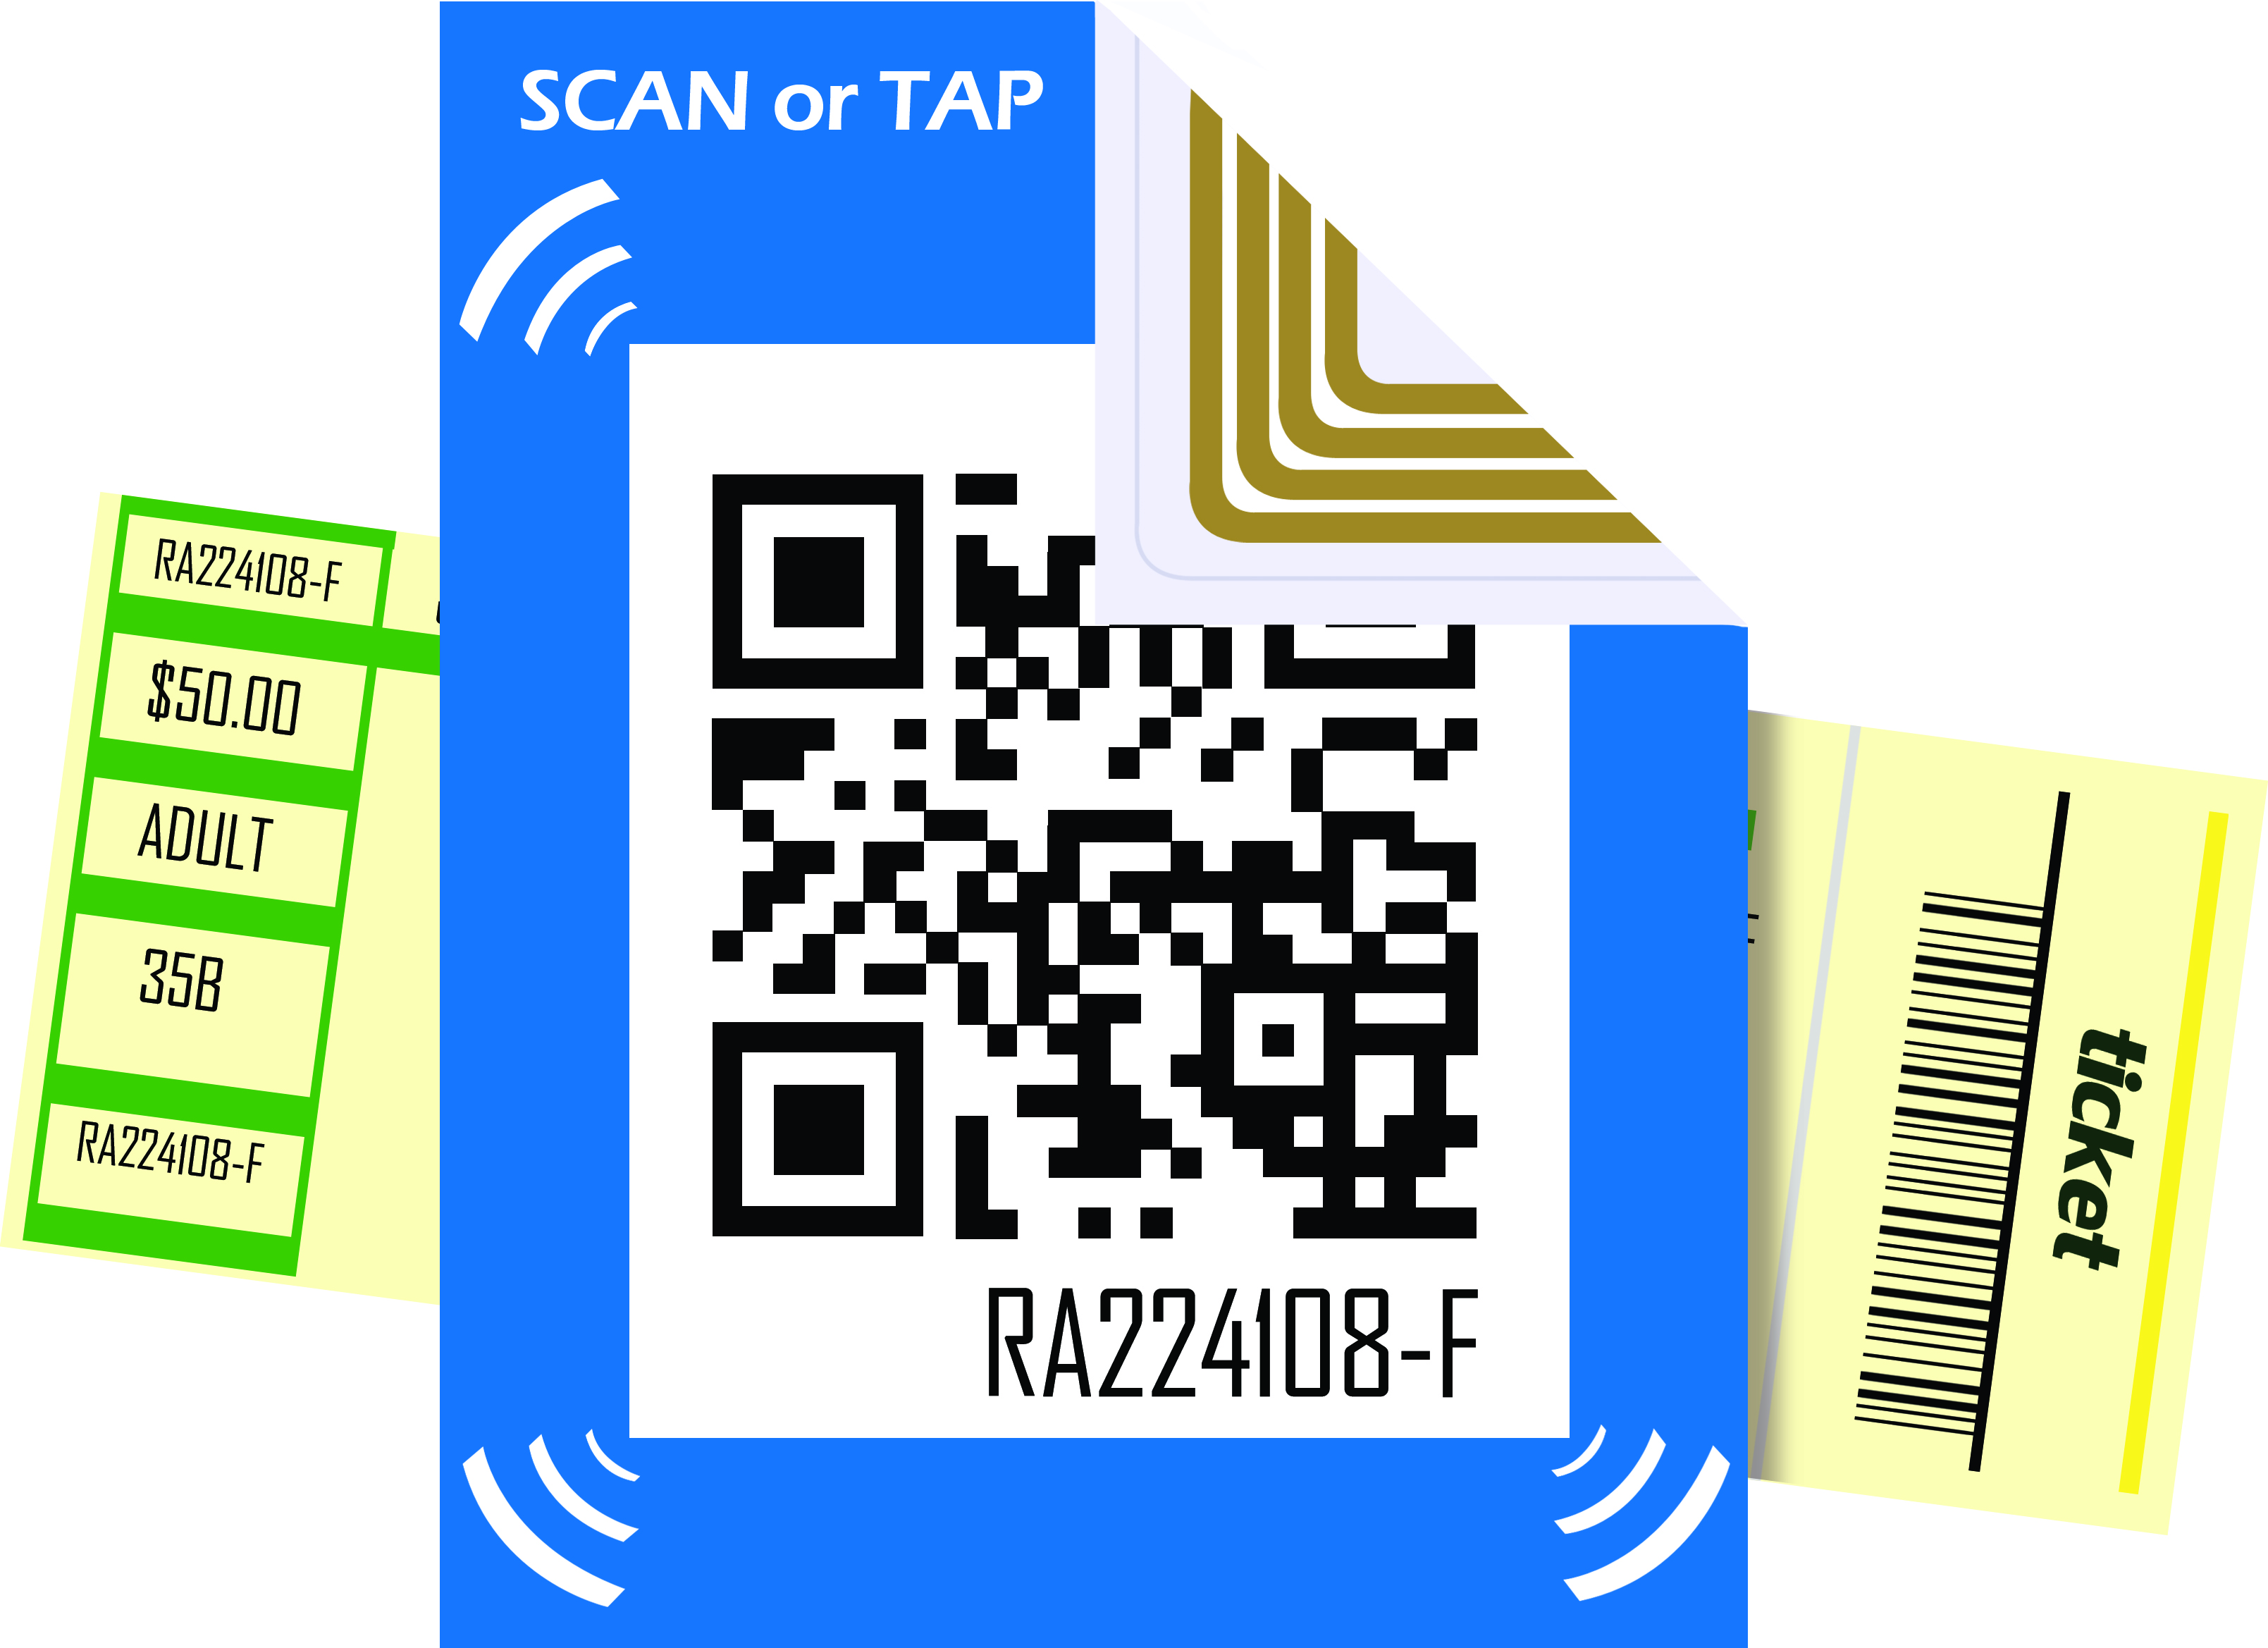 Nfc Tags Nfc Tag News Scan With Barcode Scanner